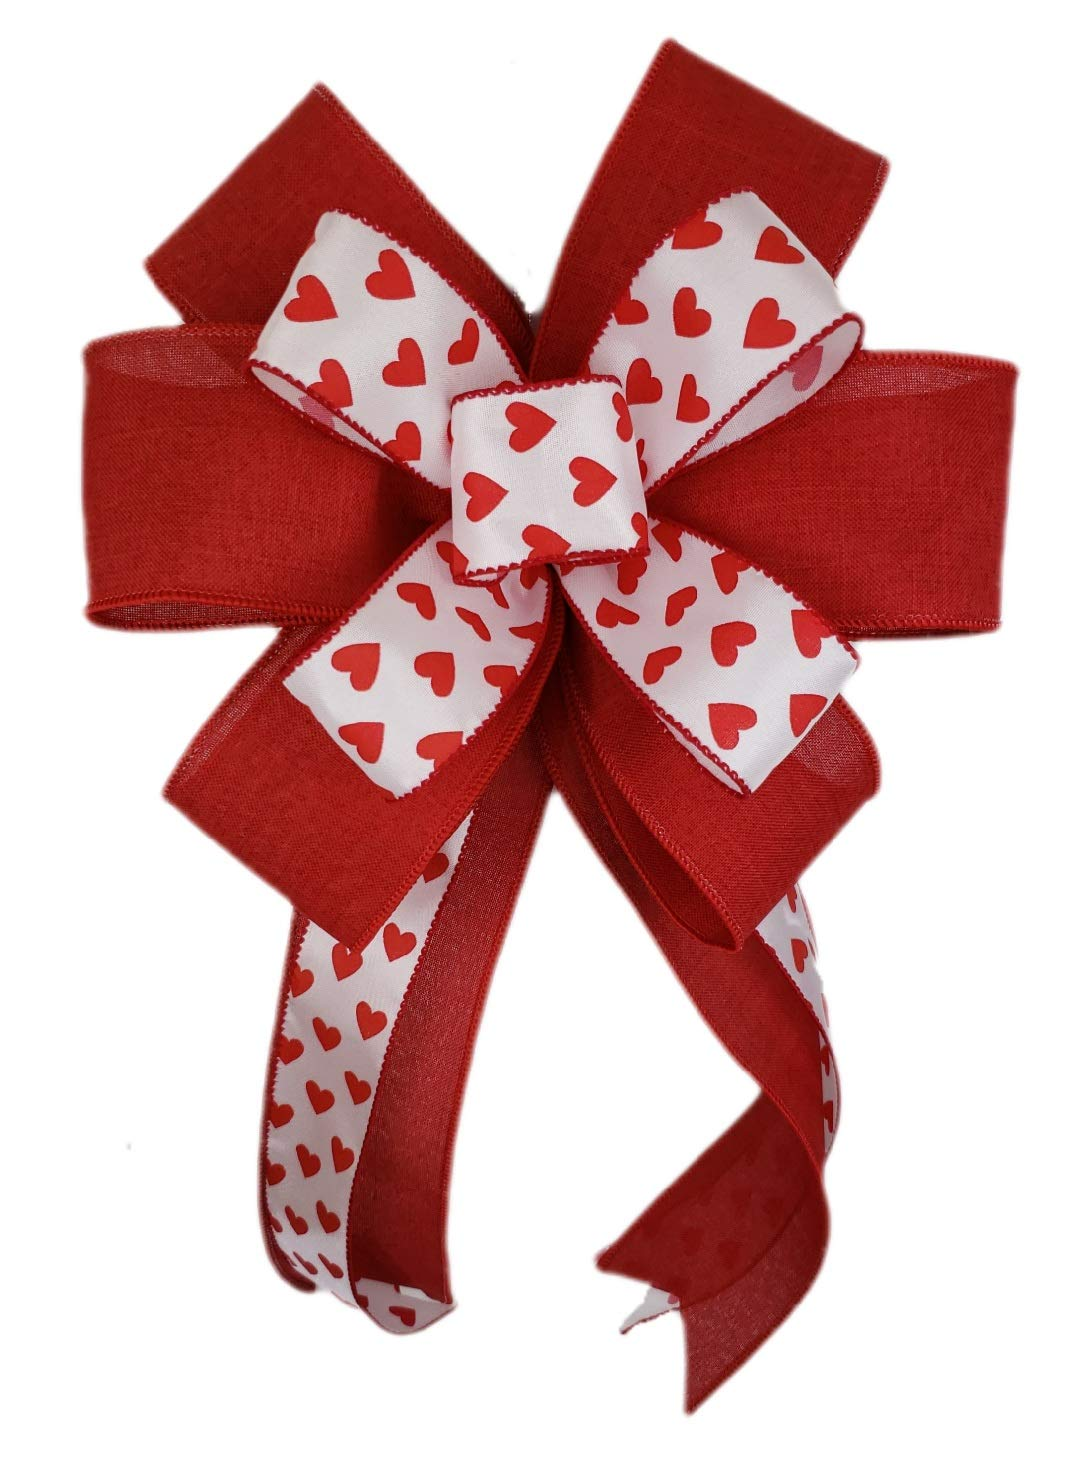 Valentines Day Red Pink Heart Plaid Bow for Wreath Gift Swag Lantern Basket Tree Door 10 x 18 inches